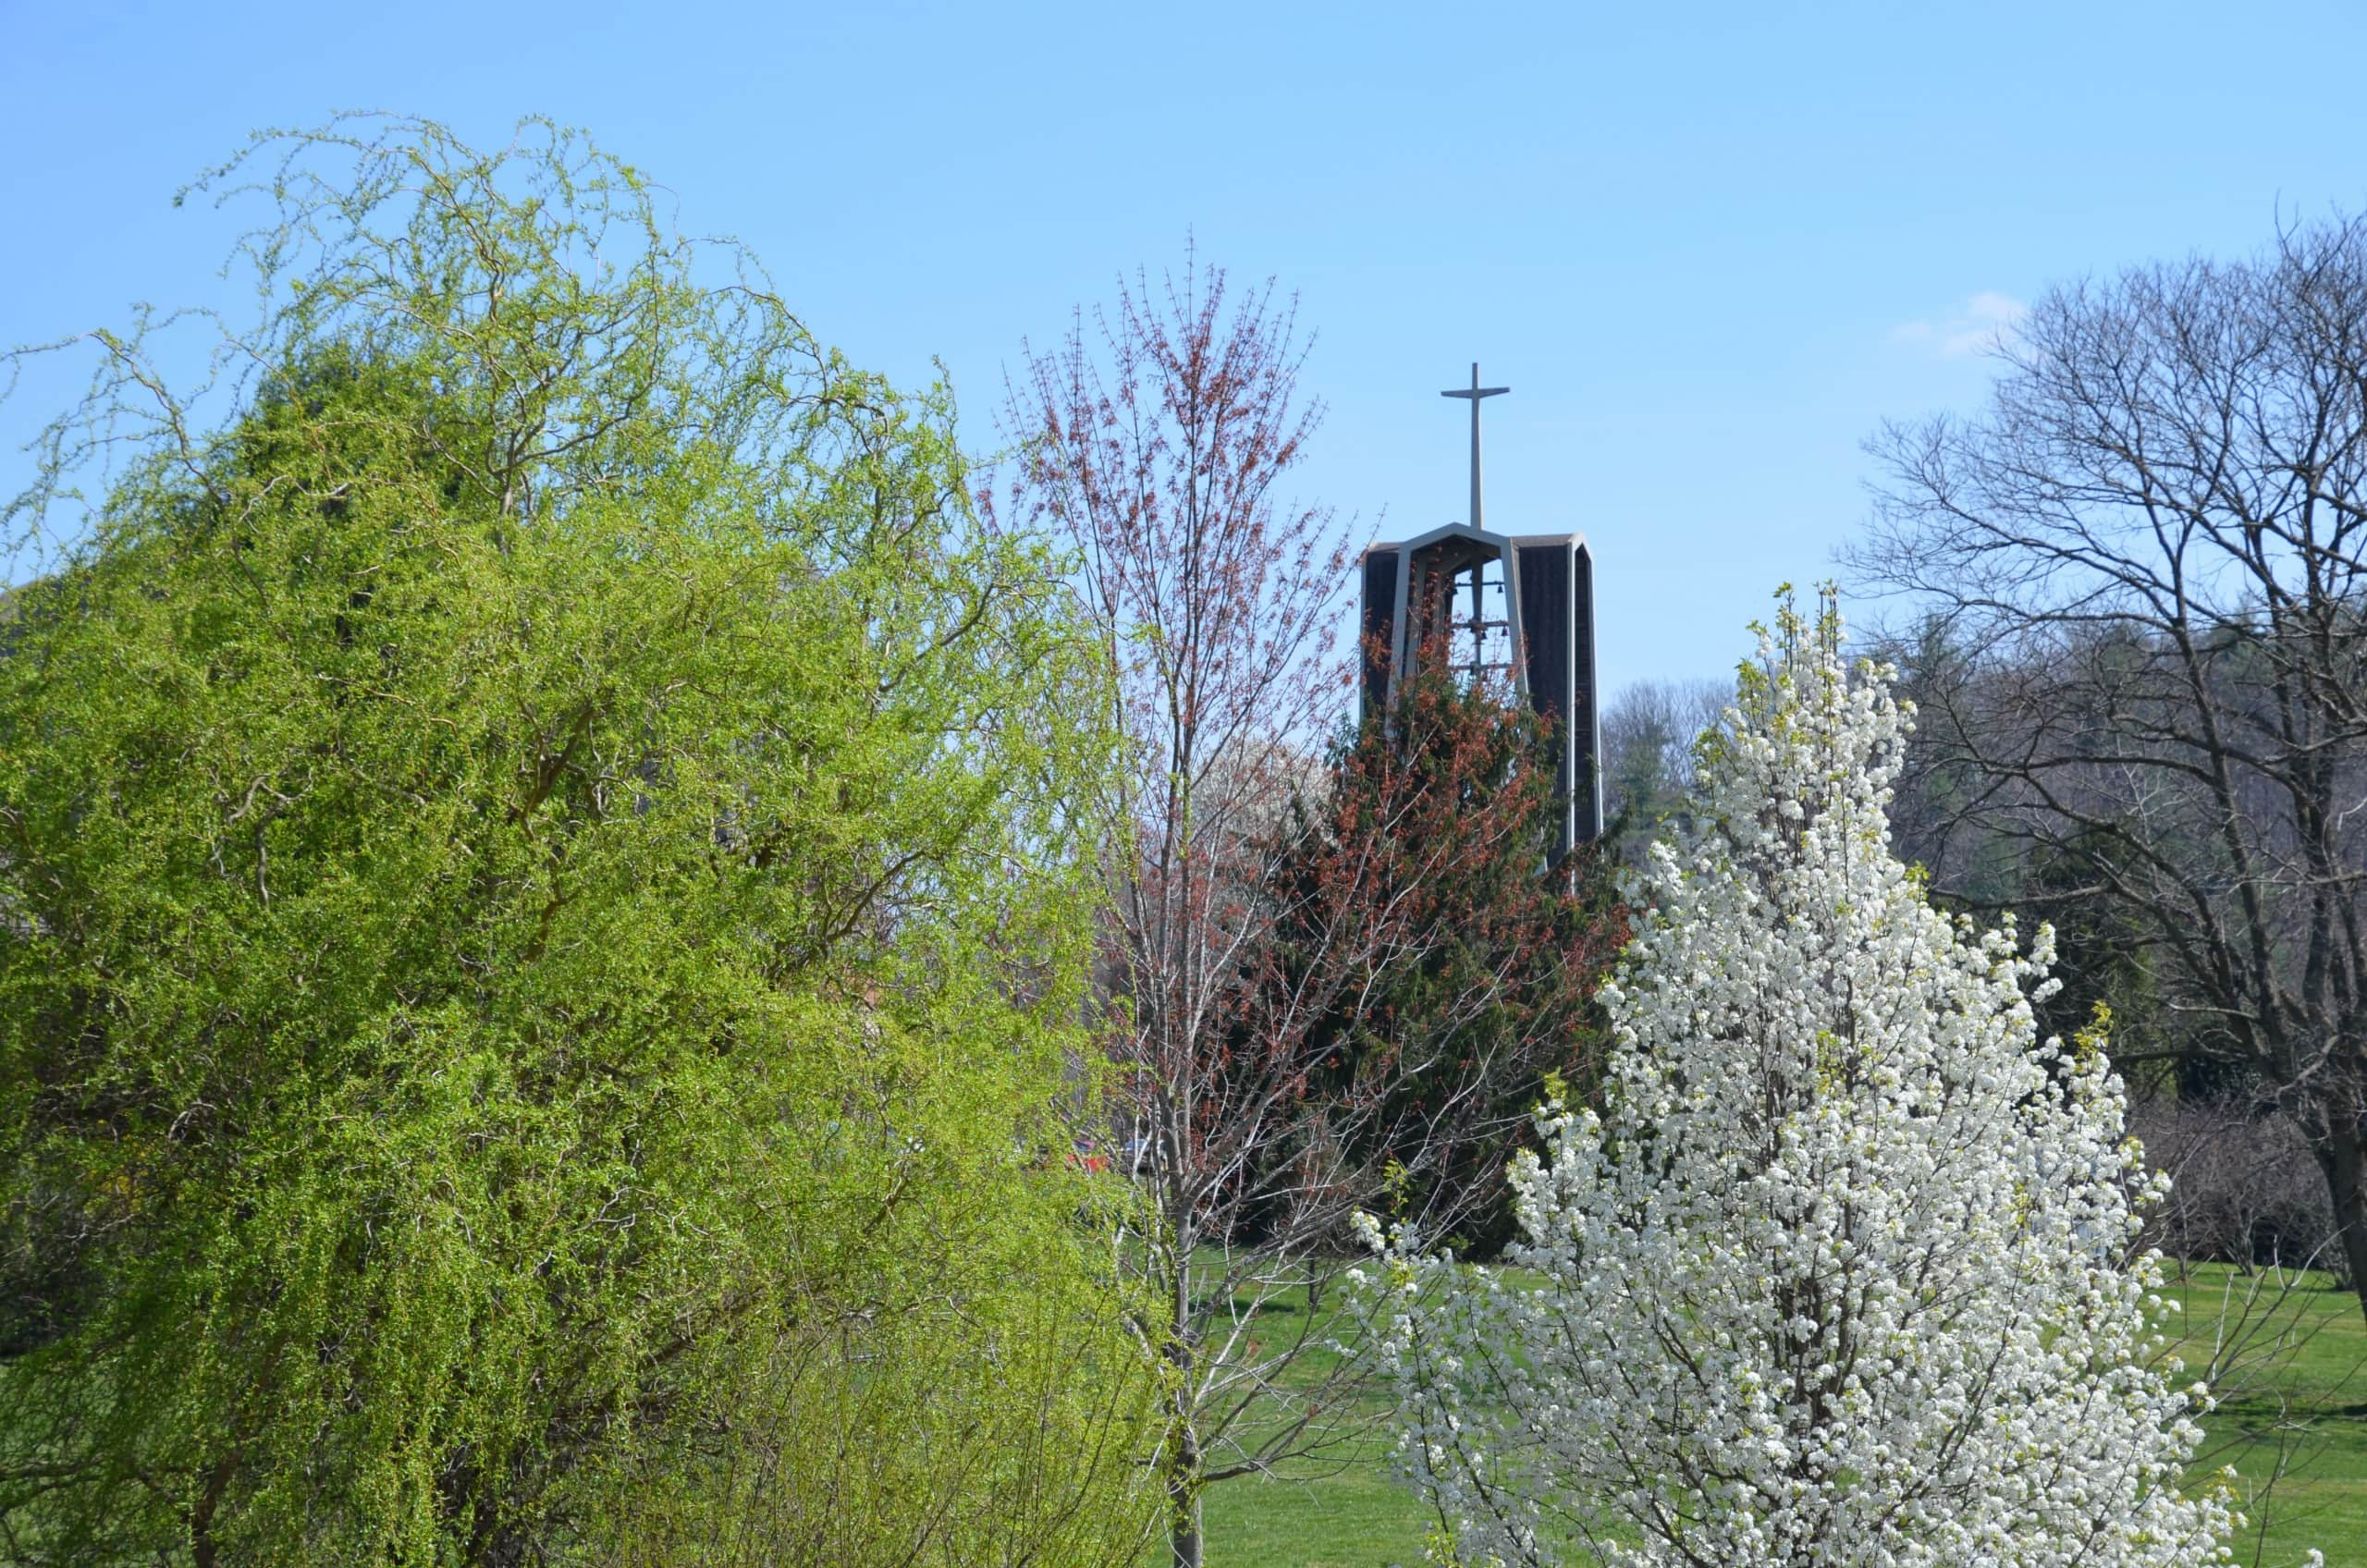 Ferrum College bell tower surrounded by spring trees. Dr. Bob Pohlad photo.